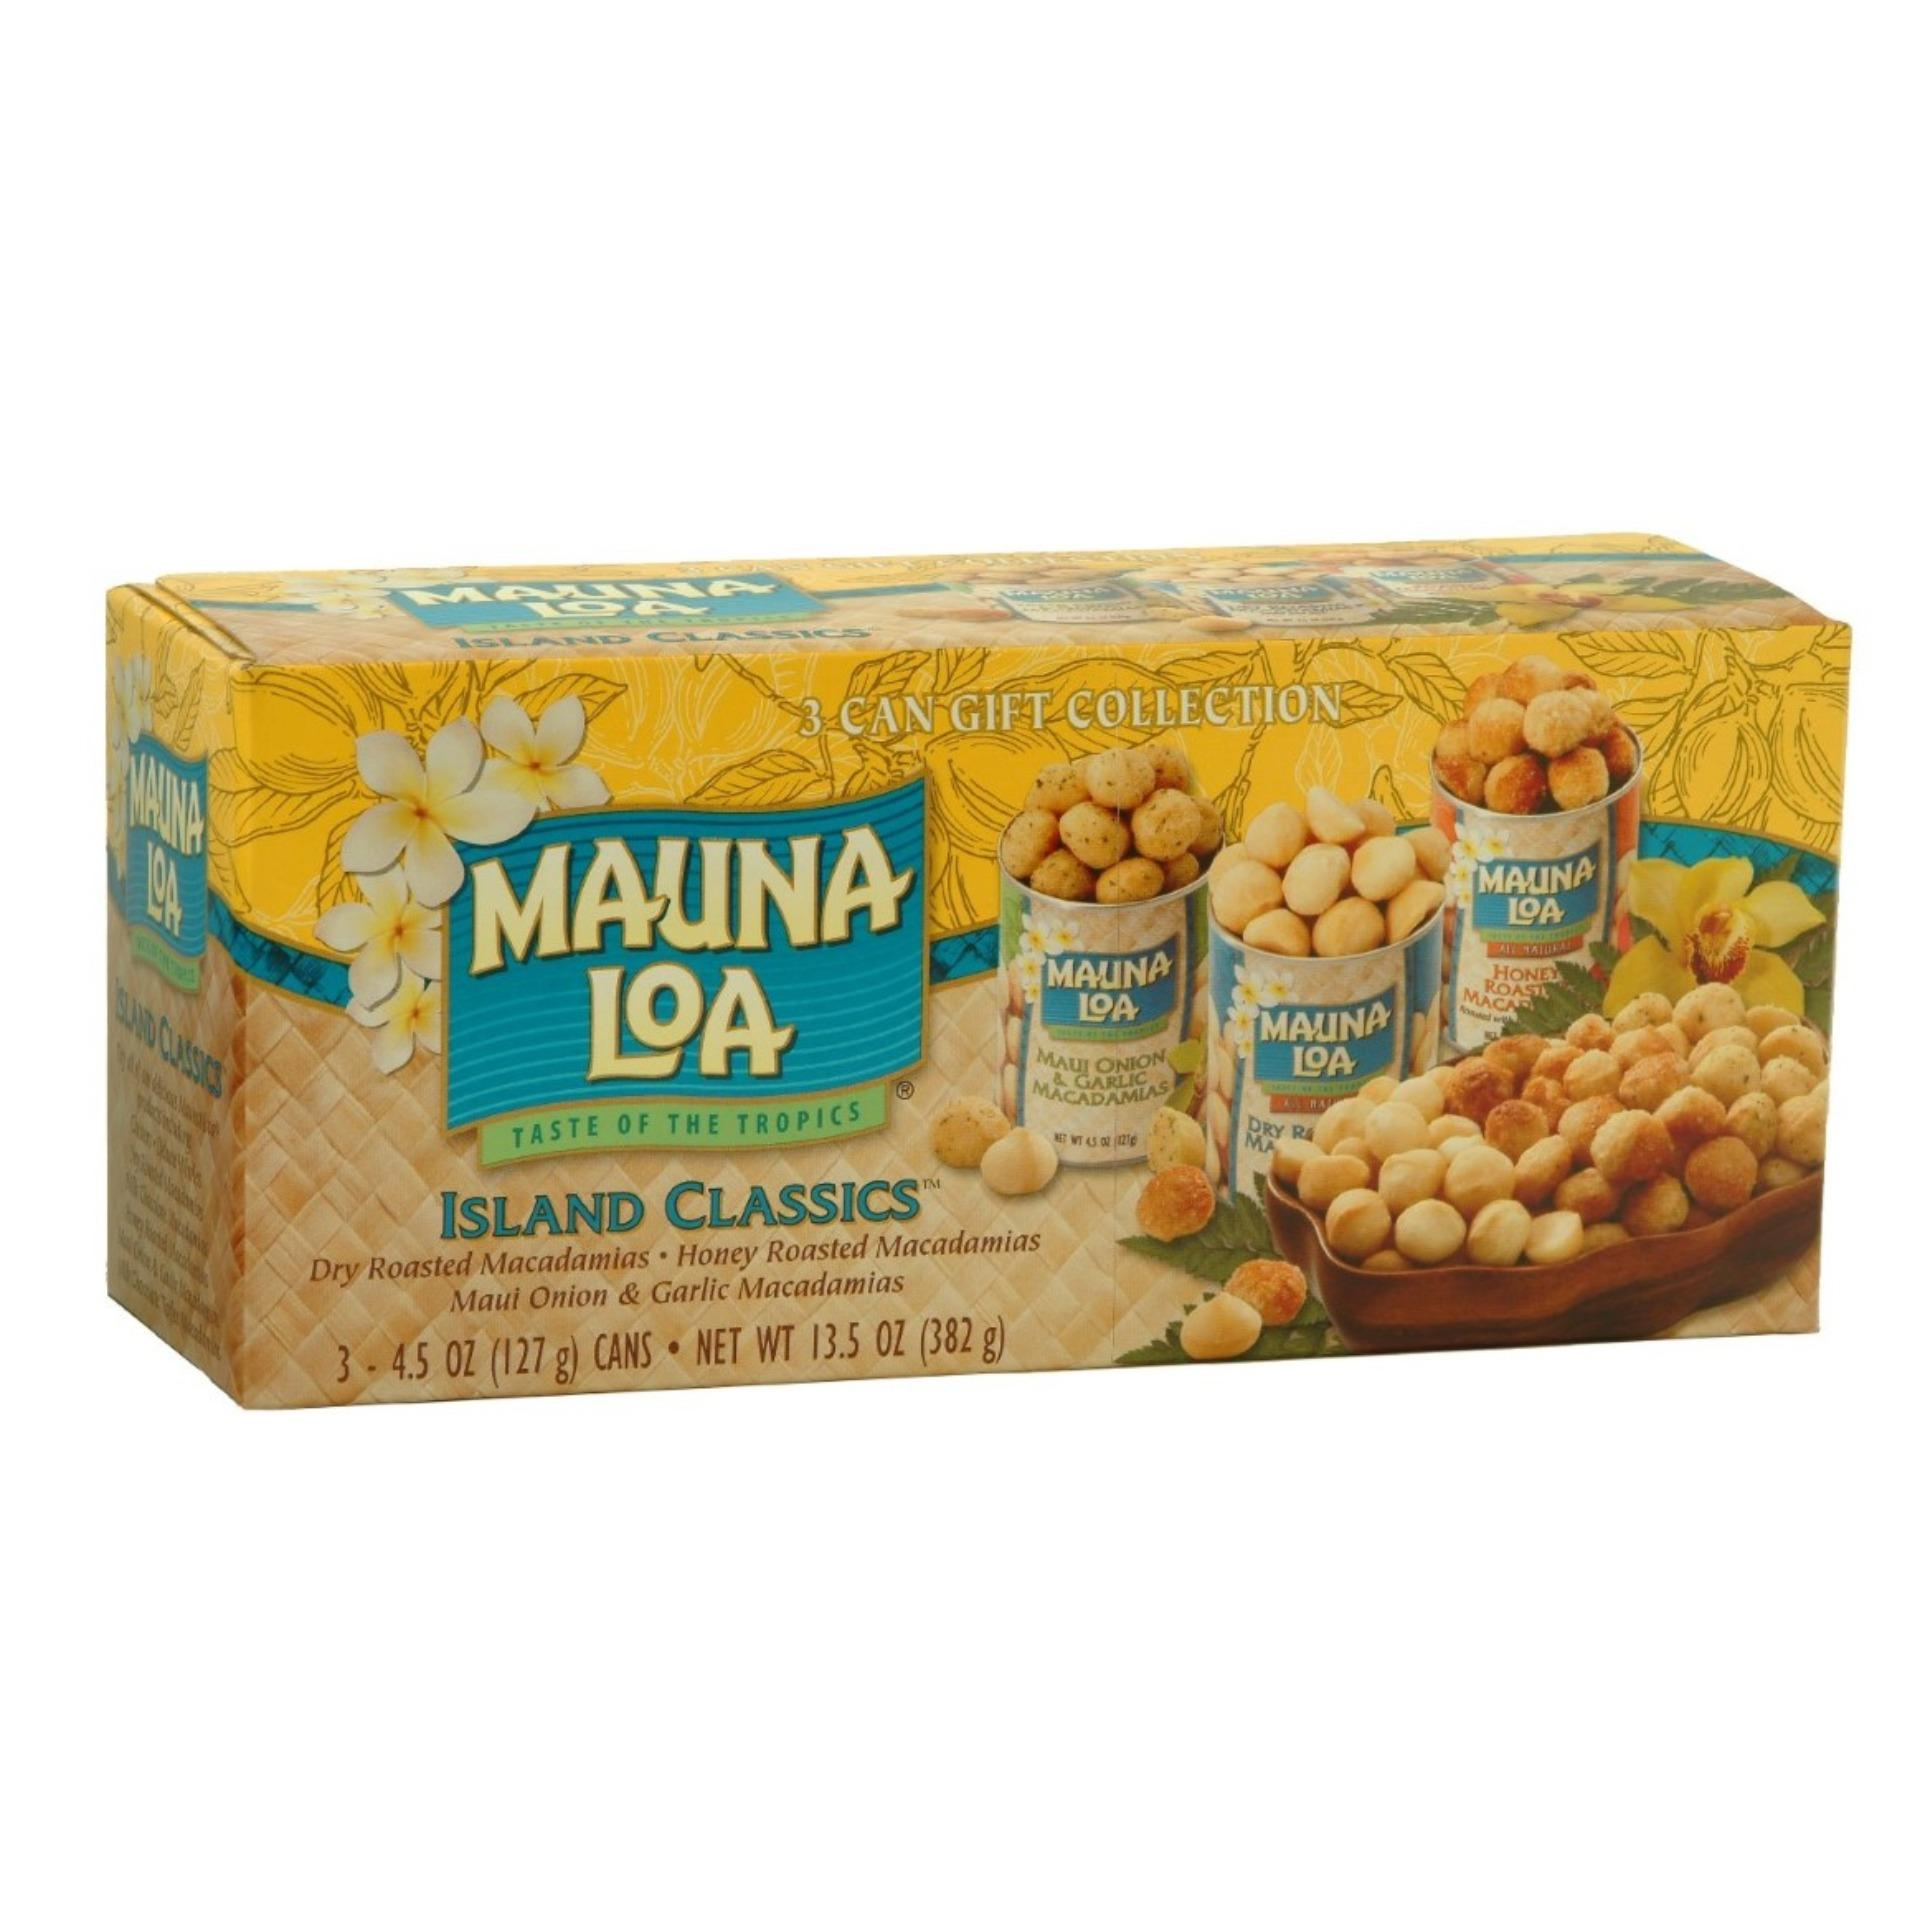 Price Hawaii Mauna Loa Island Classic Gift Collection 3 Can Flavours Macadamia Nut Online Singapore